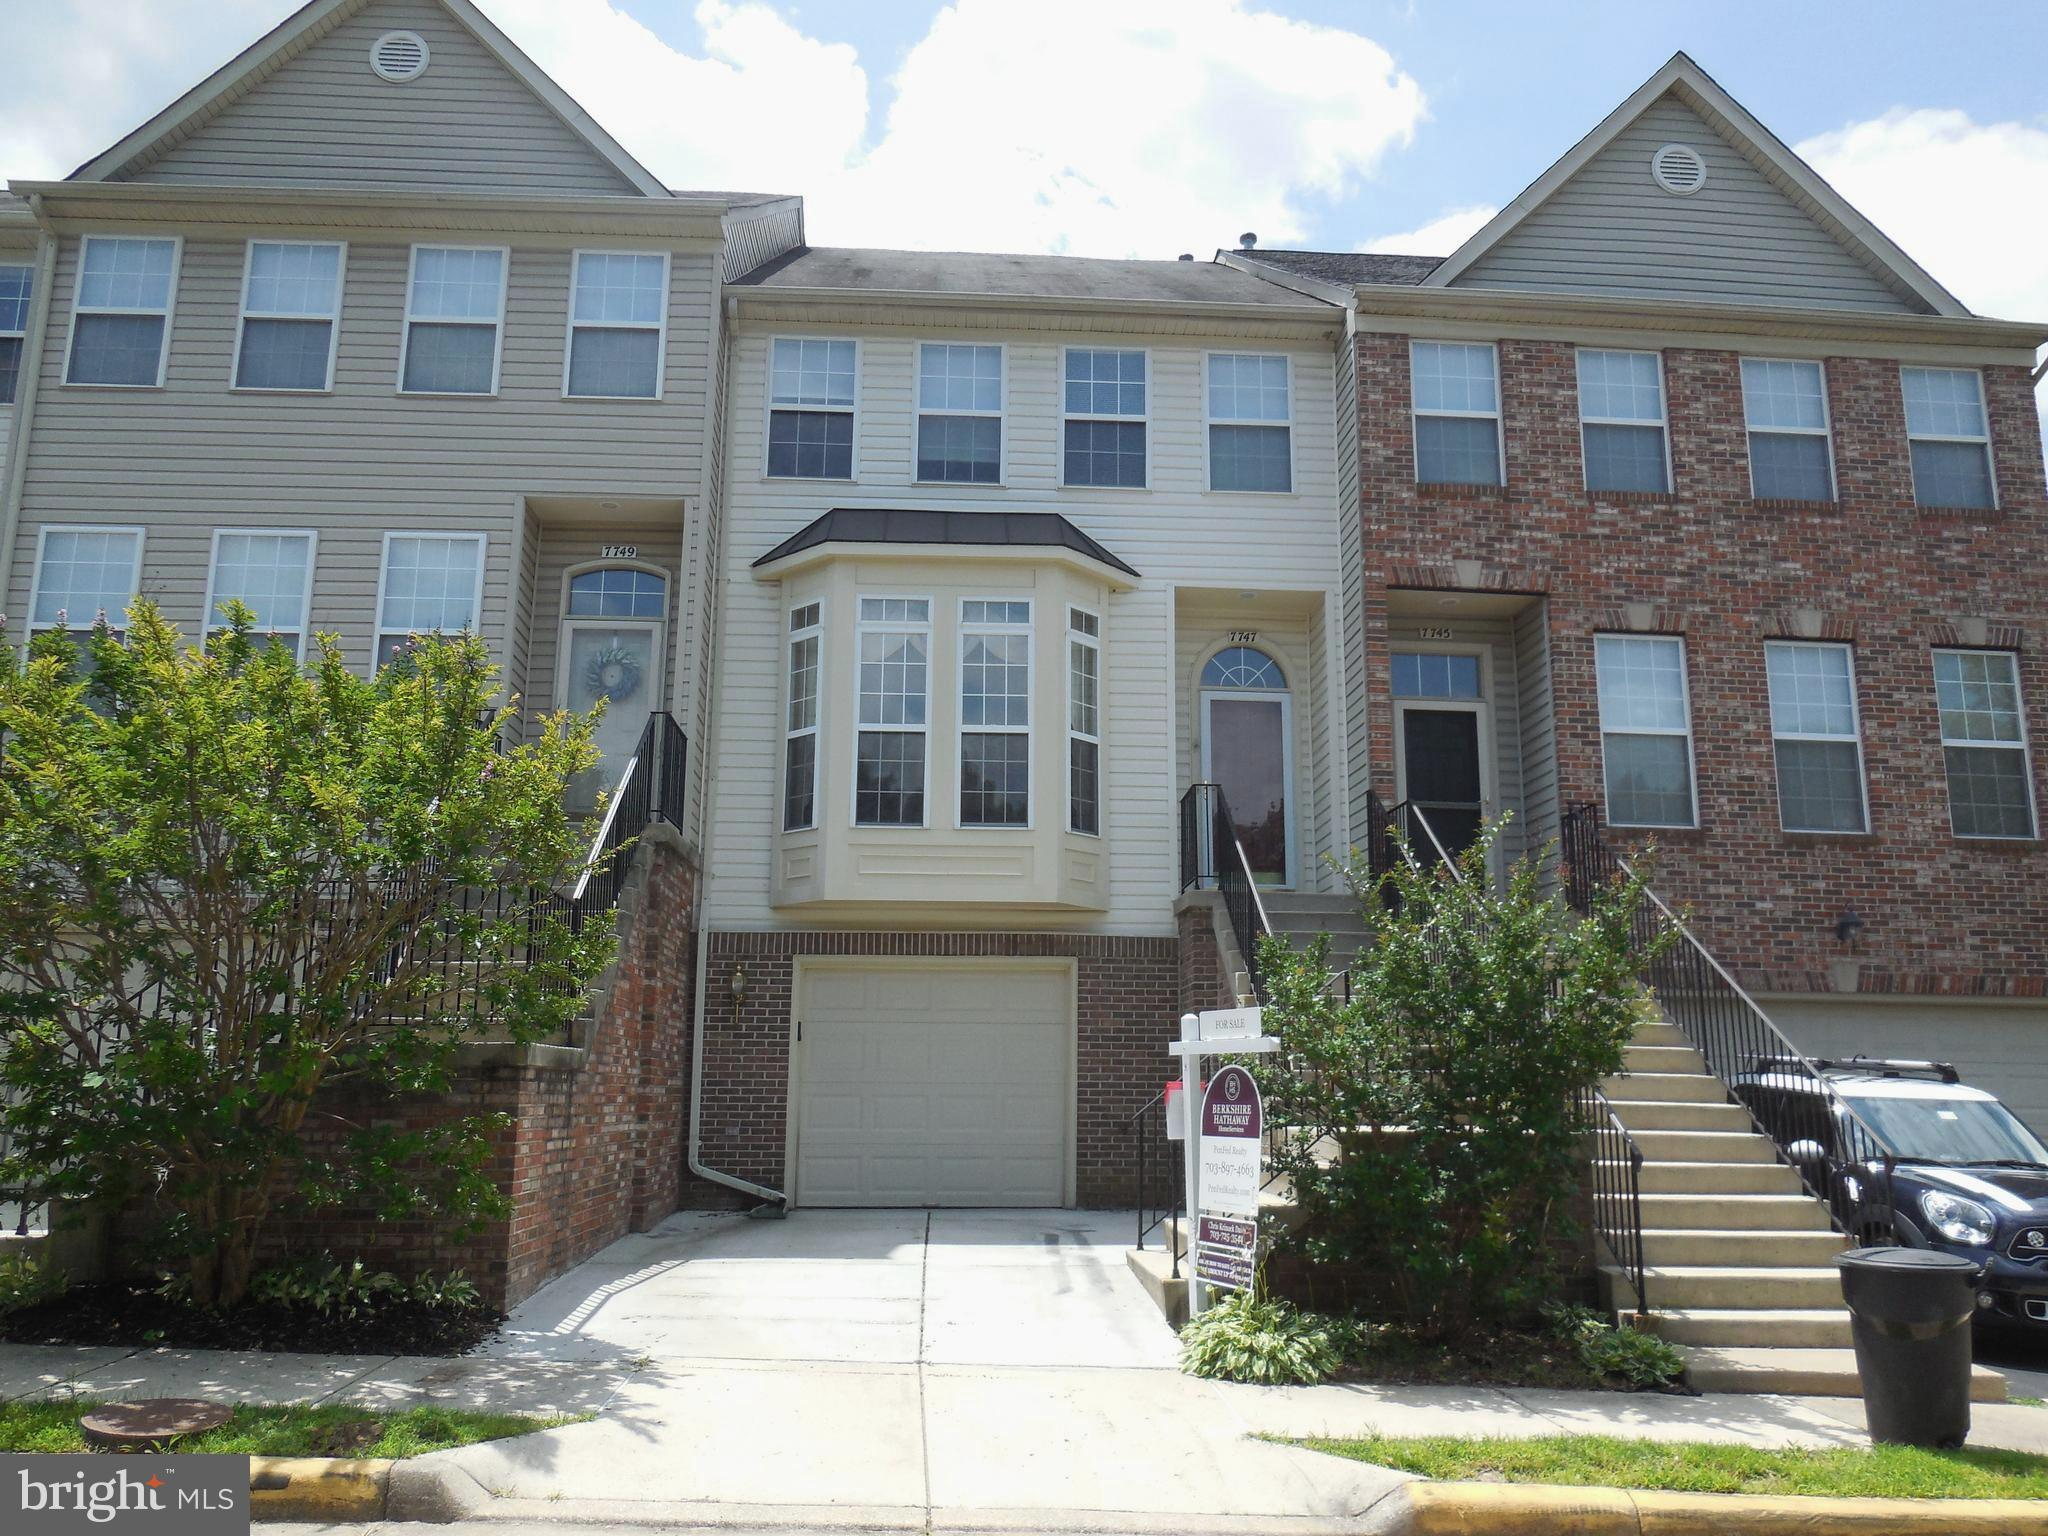 Commuters dream. Spectacular Island Creek 3 BR, 2 full BA plus 2 half BA, 1-car garage townhouse features a bright and open floor plan. Amazing kitchen w/island and incredible butlers pantry. Huge deck is perfect for entertaining. Finished walk-out bsmt. w/fp and 1/2 BA. Close to Metro, Fort Belvoir, Wegman's, NoVa Community College, commuter routes and the Mall. HVAC and HW heater being replaced.